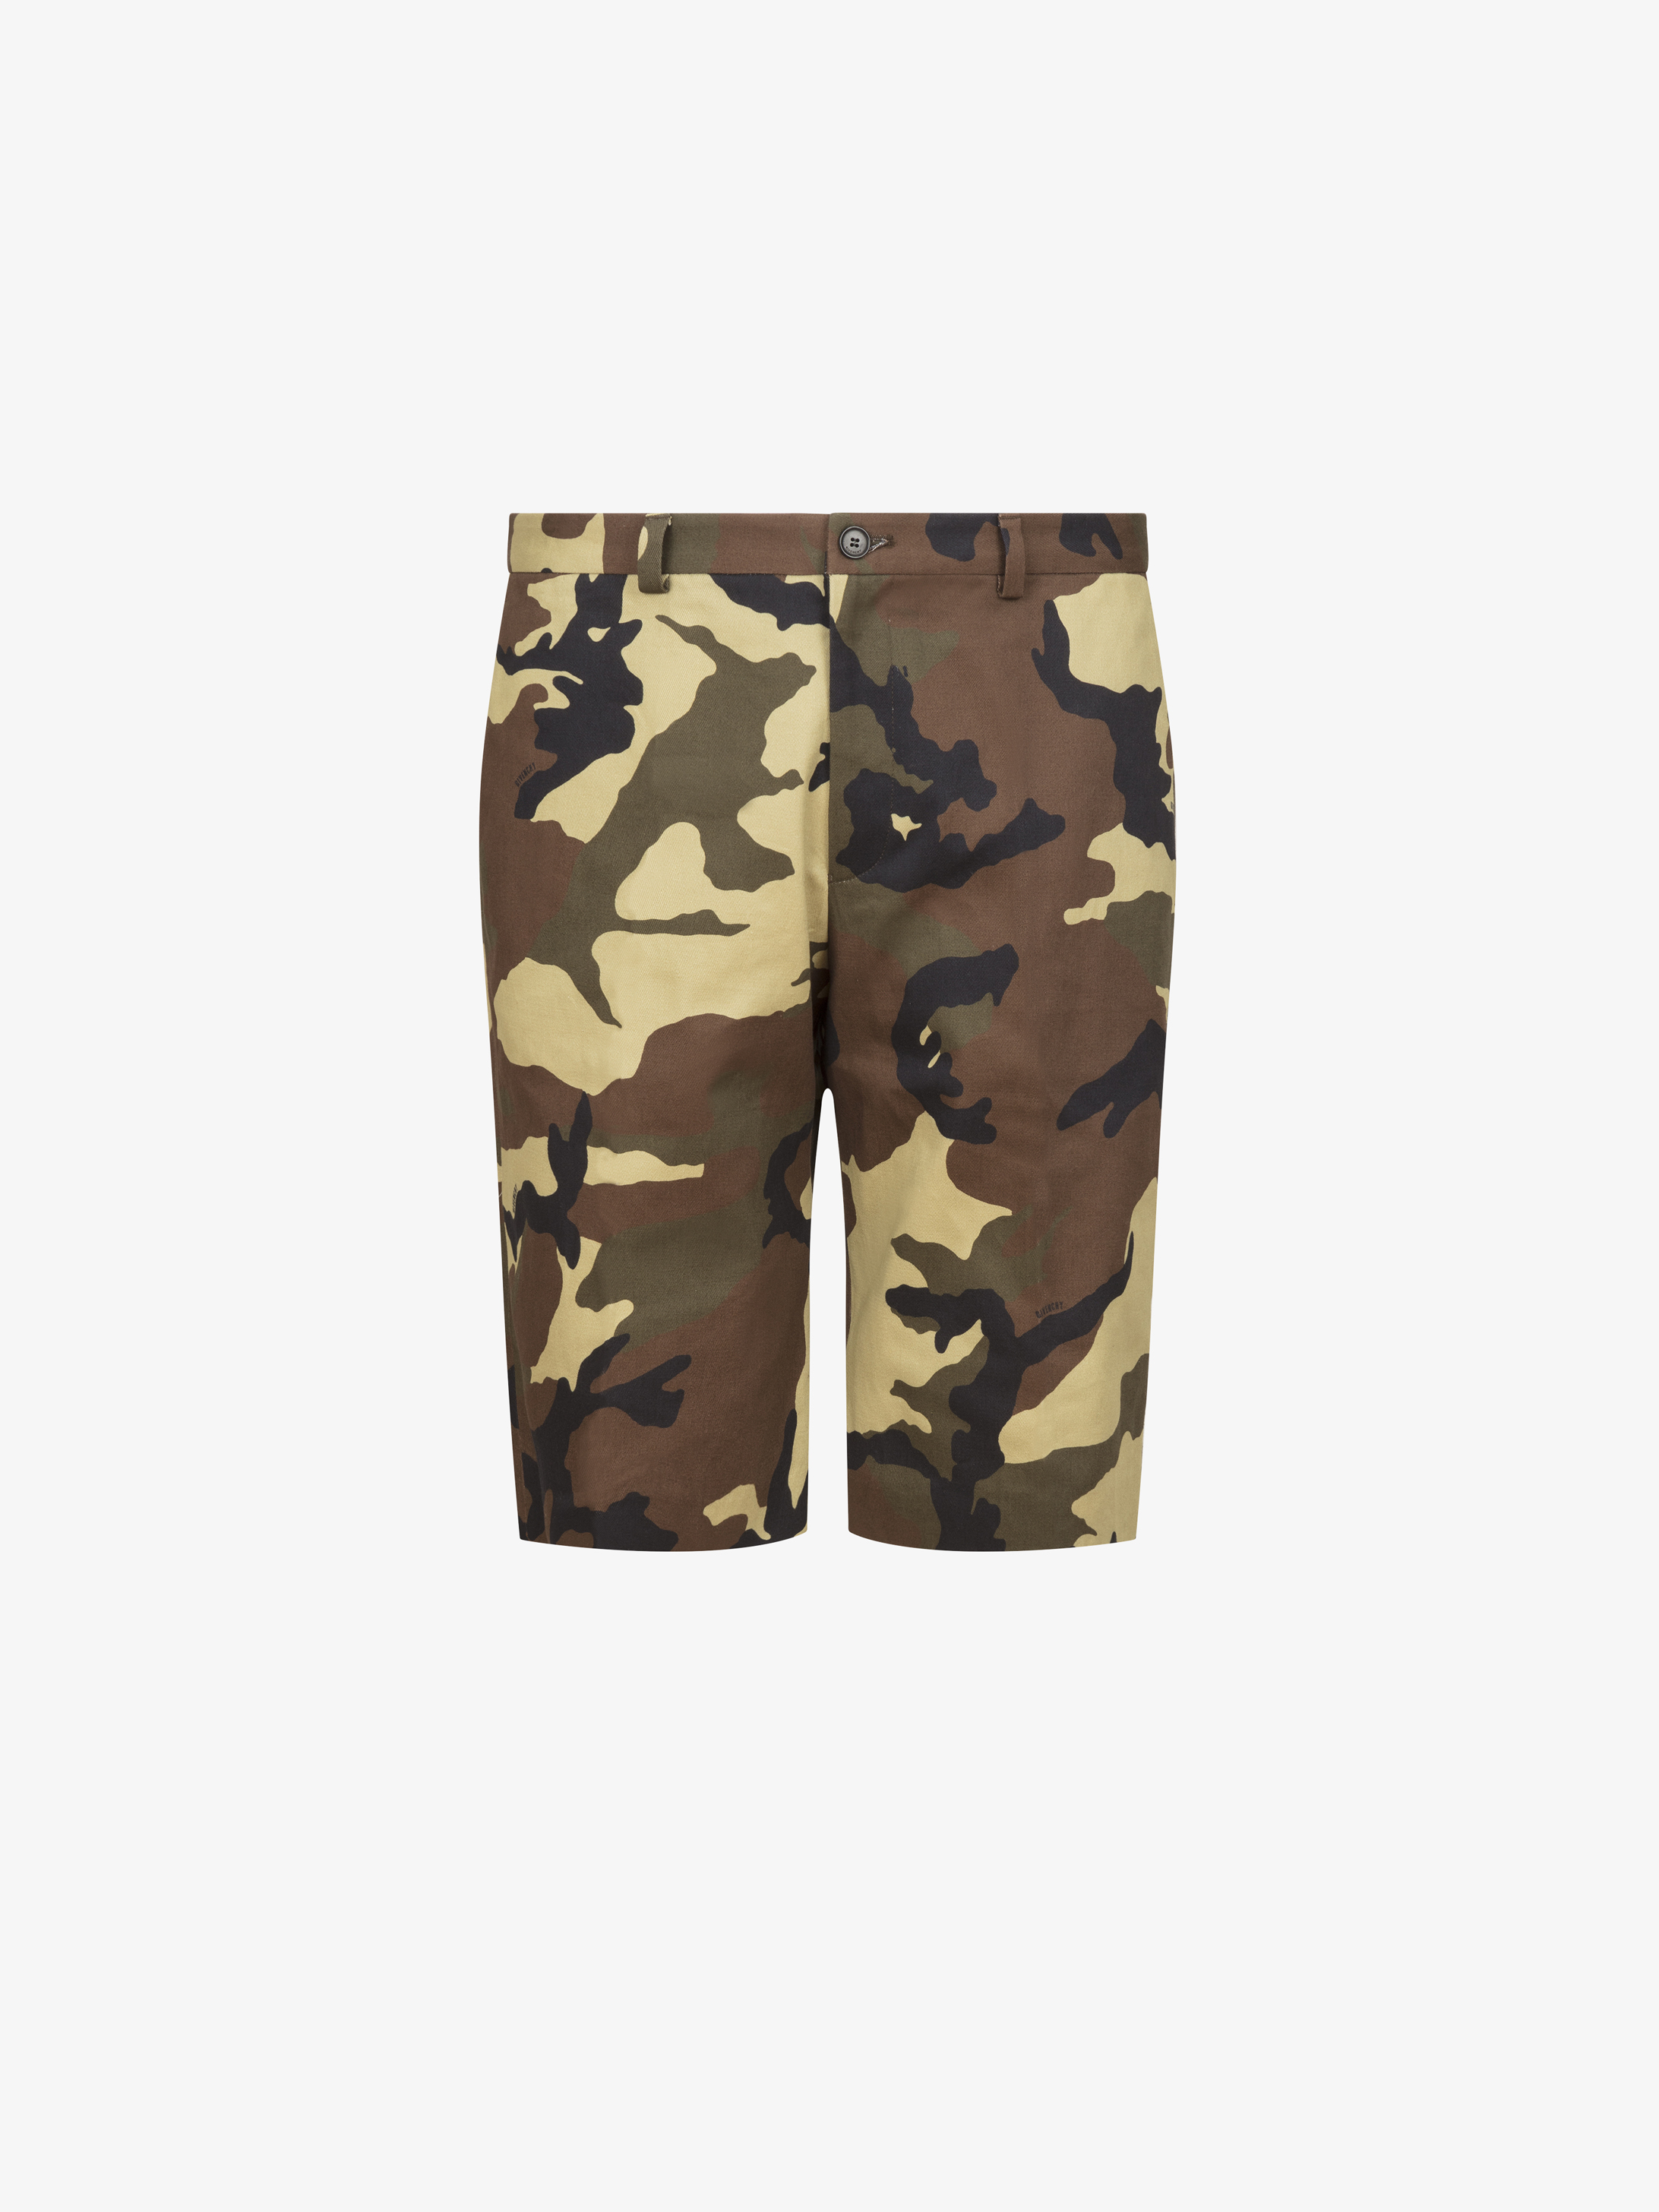 Camo printed short pants